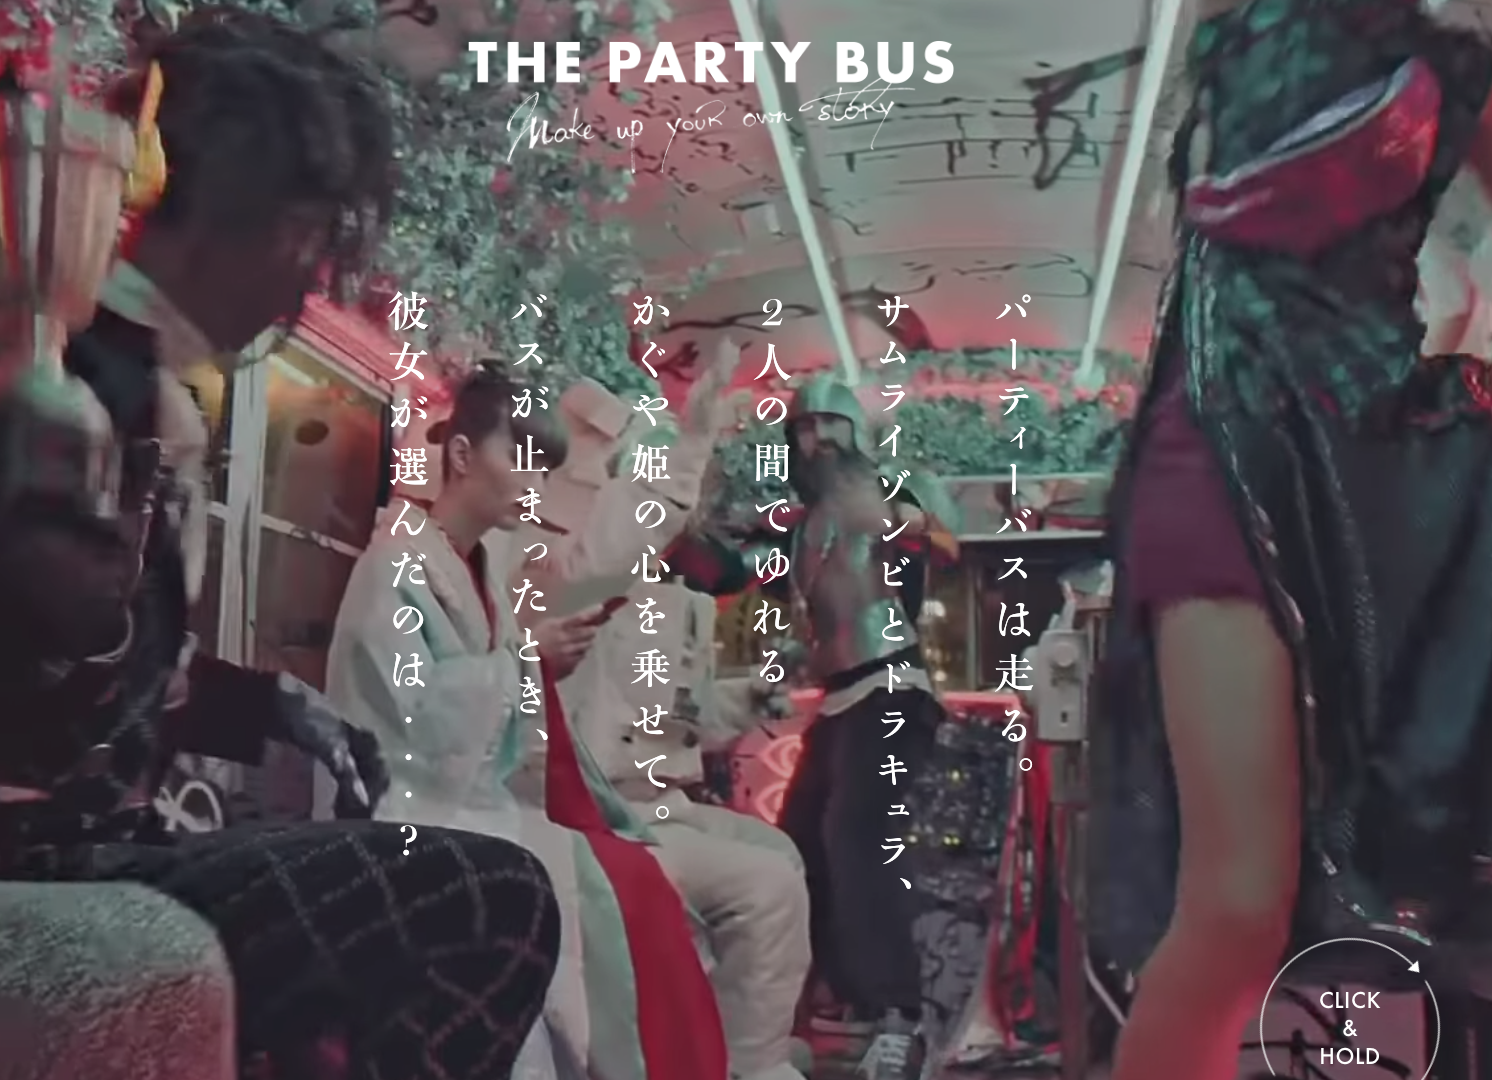 The Party Bus - January 30, 2019was awarded Grand Prix for Epica Awards and Grande Prize for ADFEST 2019